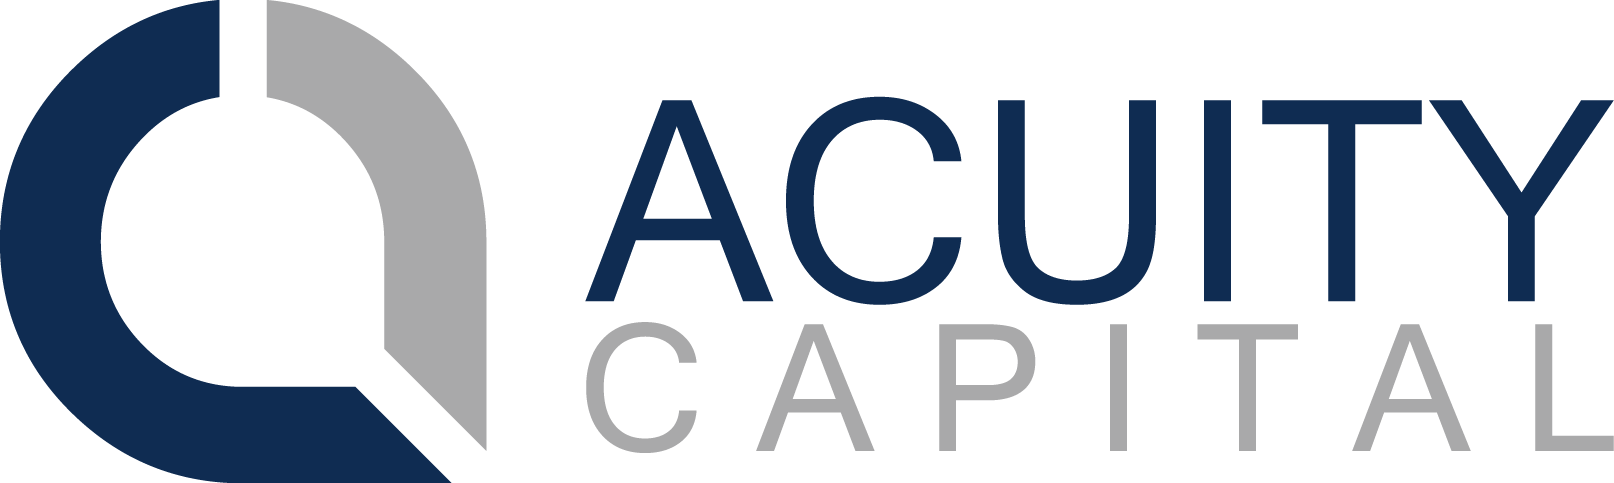 Acuity Capital FINAL - PNG - 22k.png